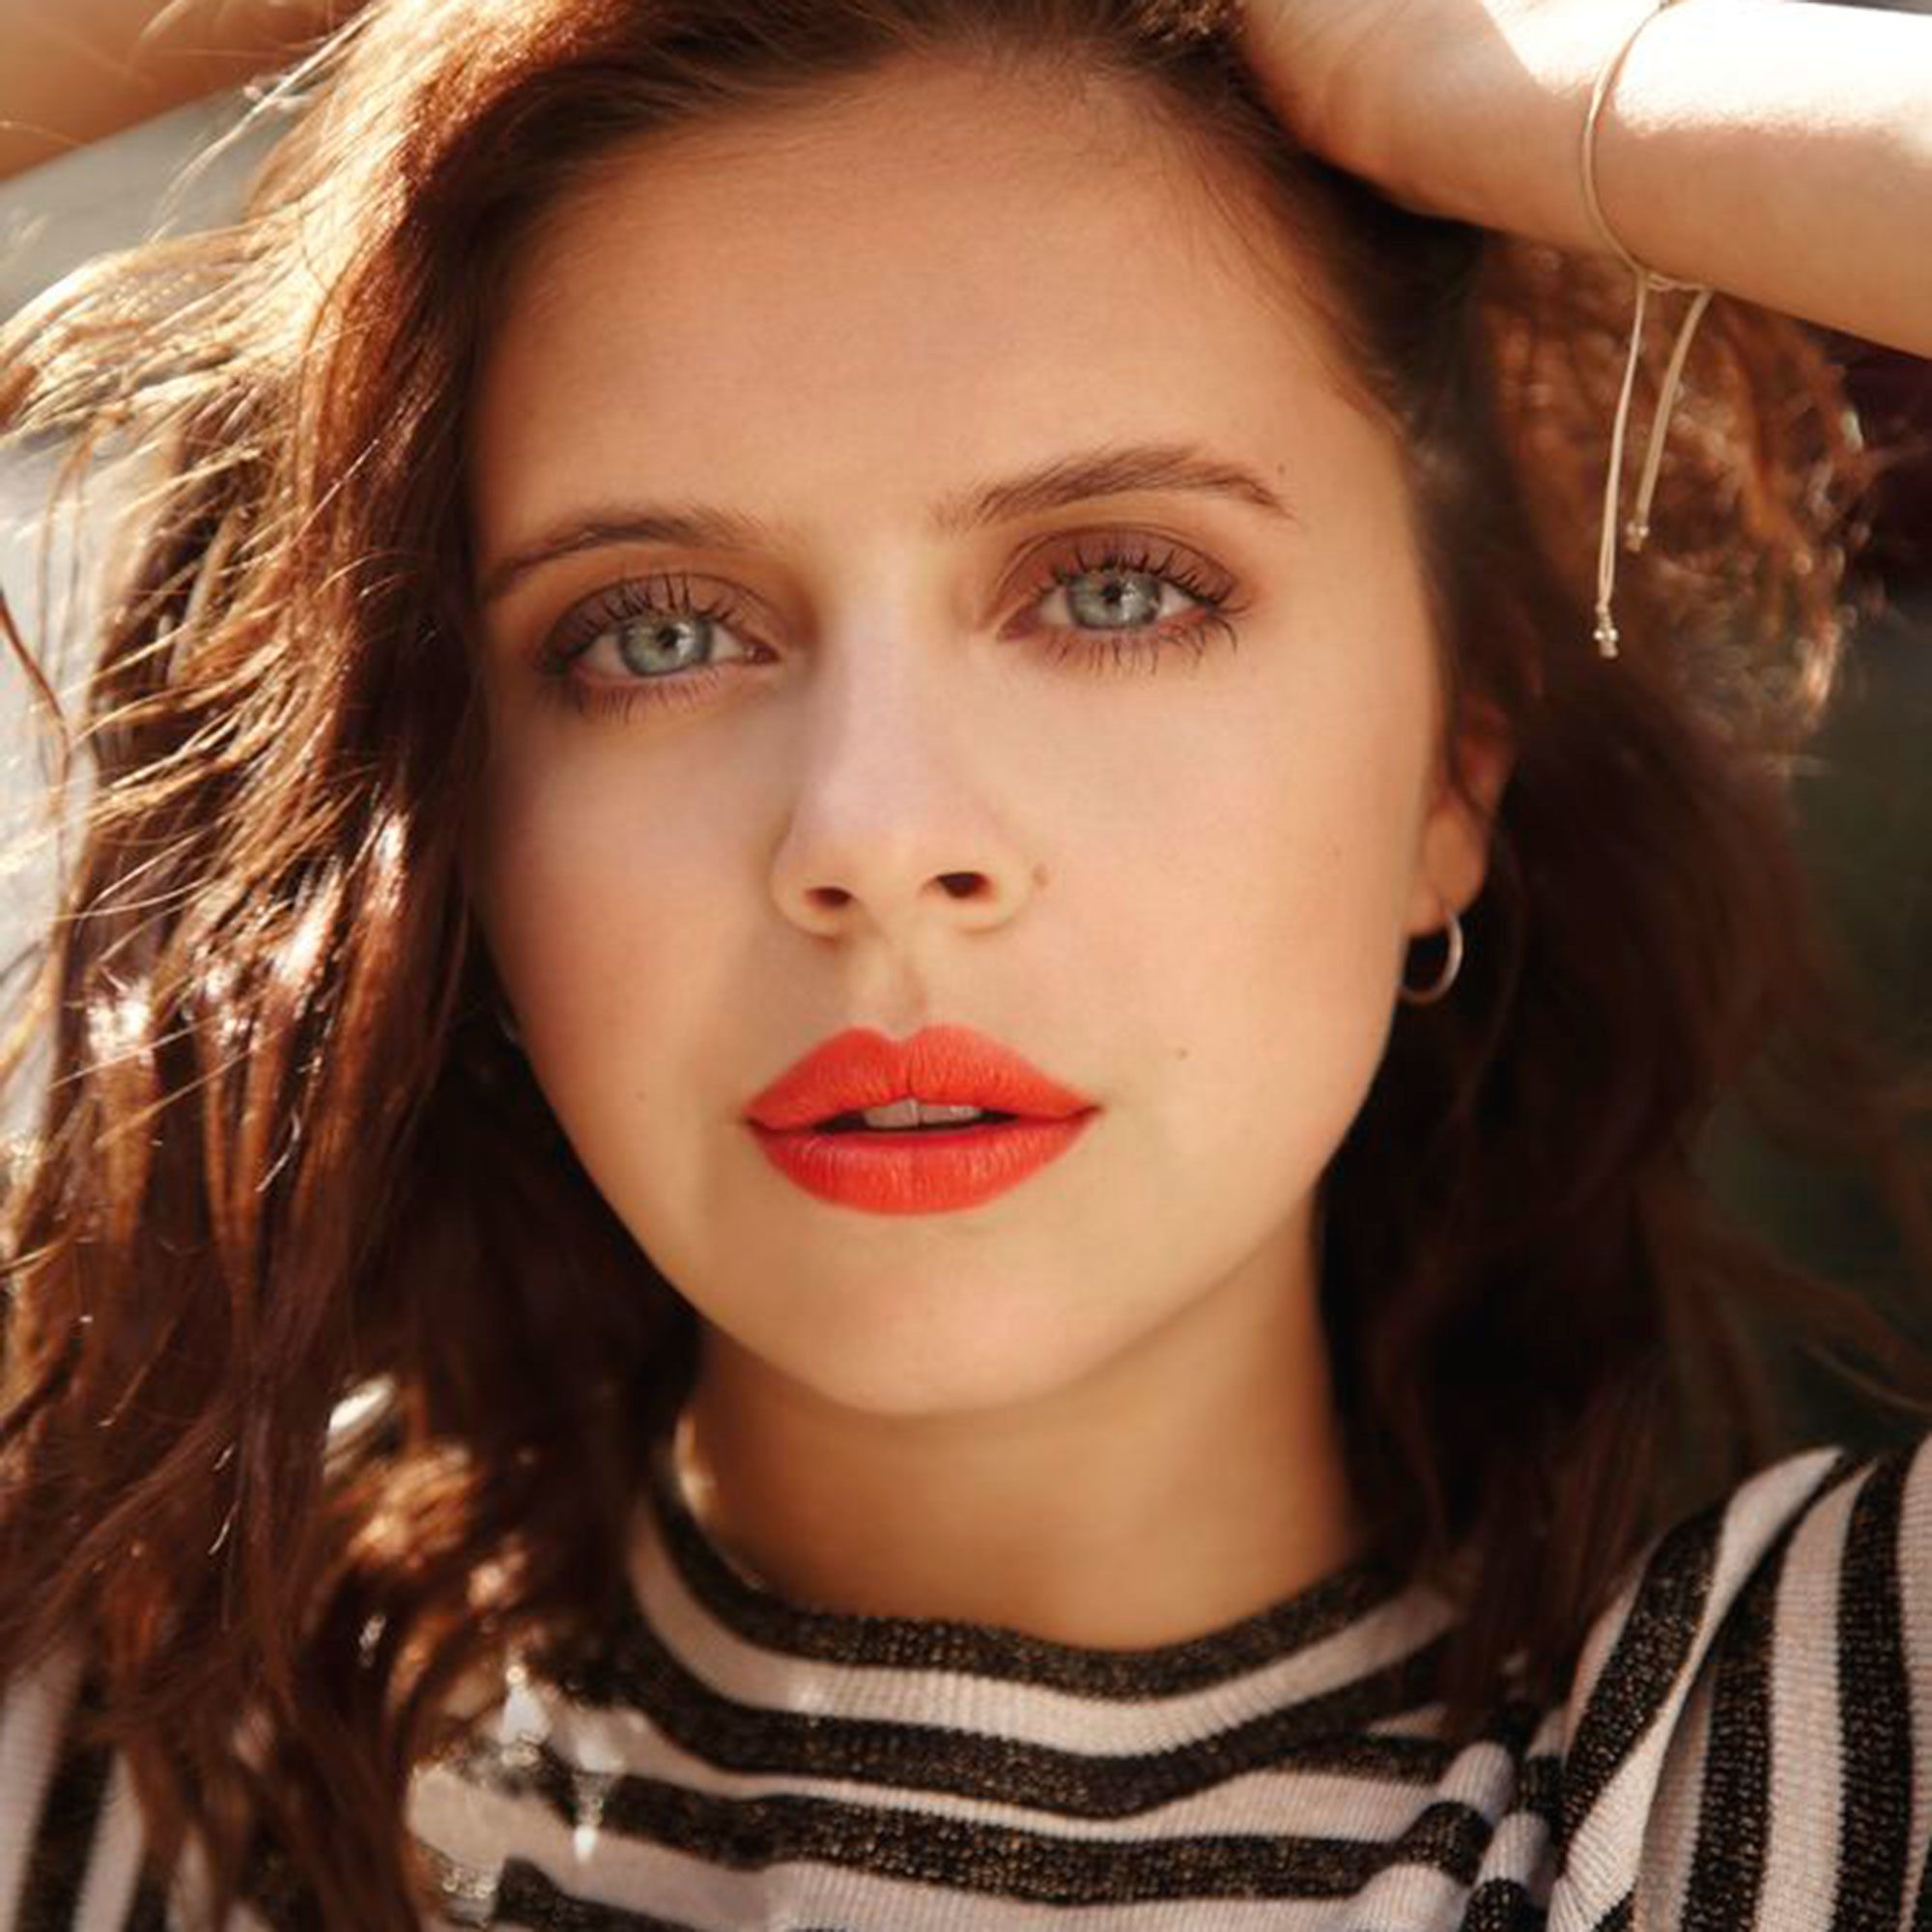 Bel Powley Bel Powley new photo